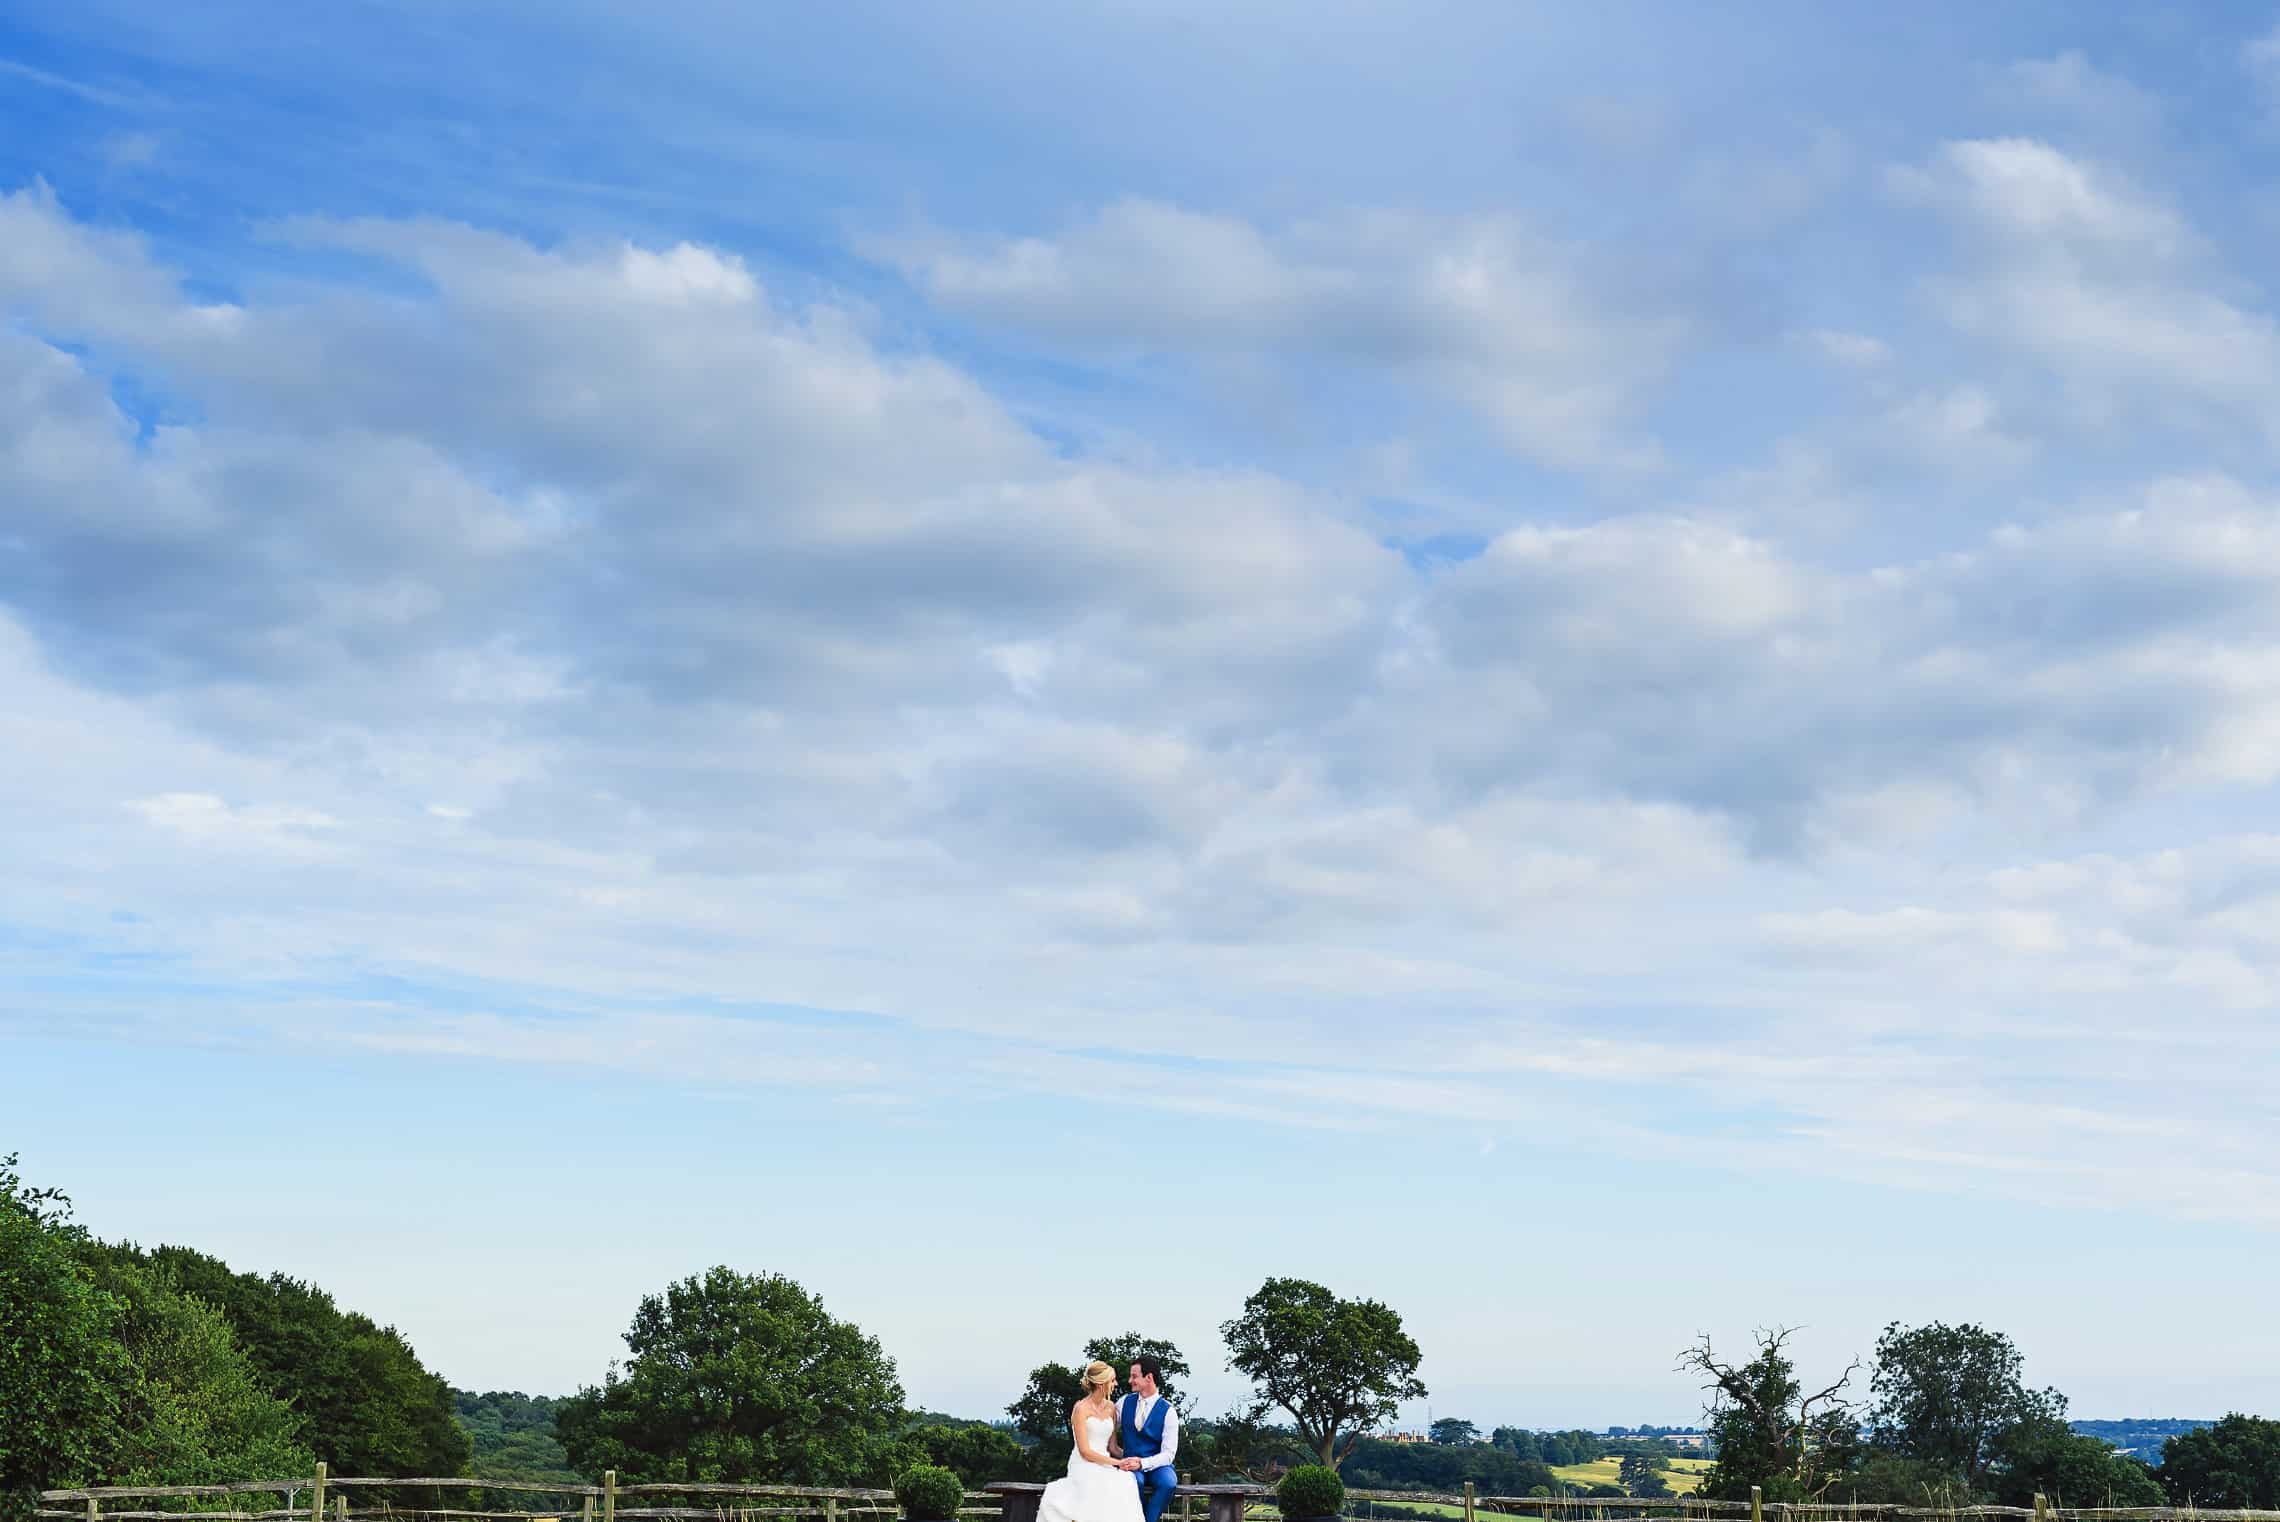 gaynes_park_wedding_lm_justin_bailey_photography_014